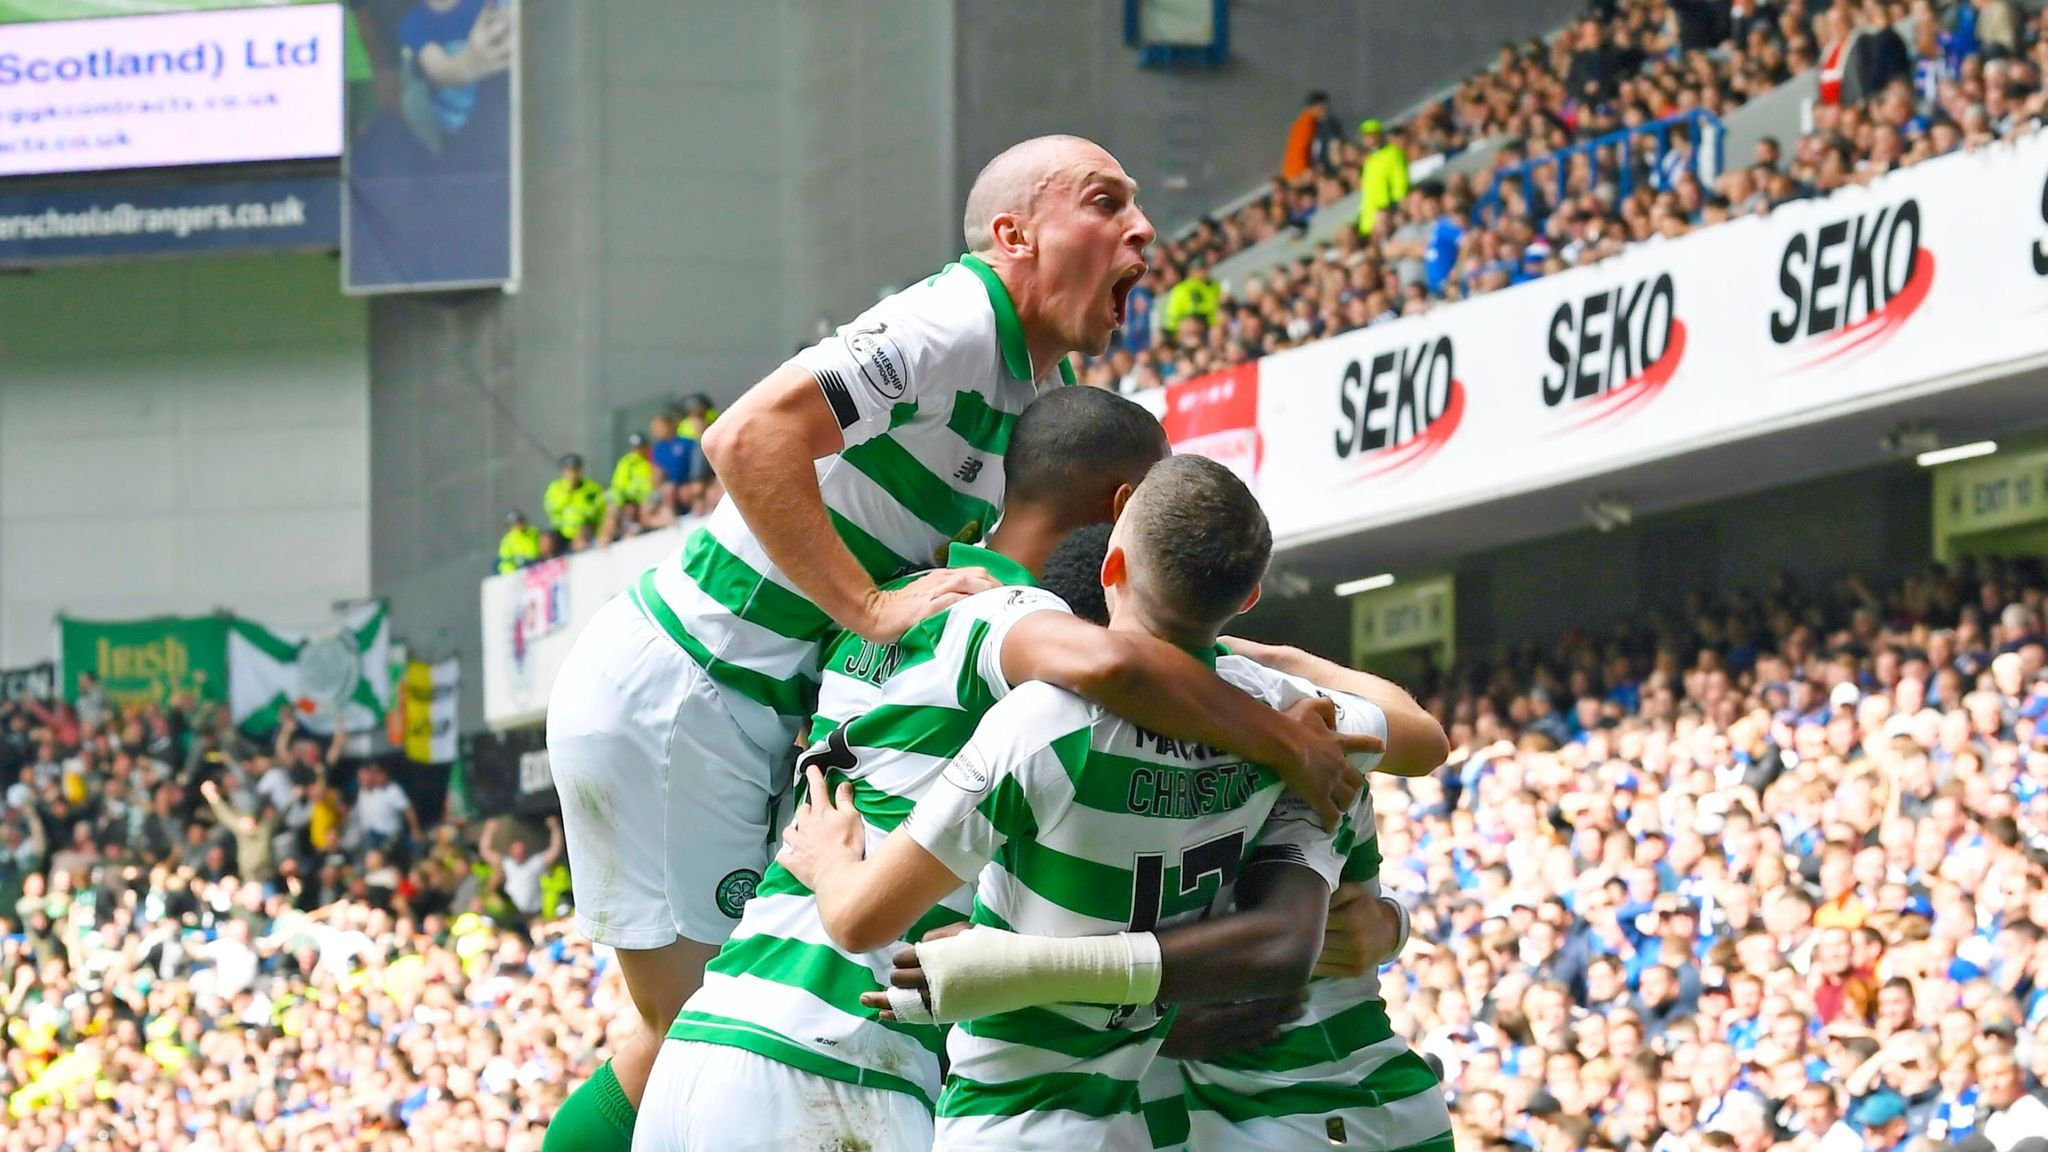 Craig Beattie questions if Celtic have the 'bottle' for Premiership title race with Rangers